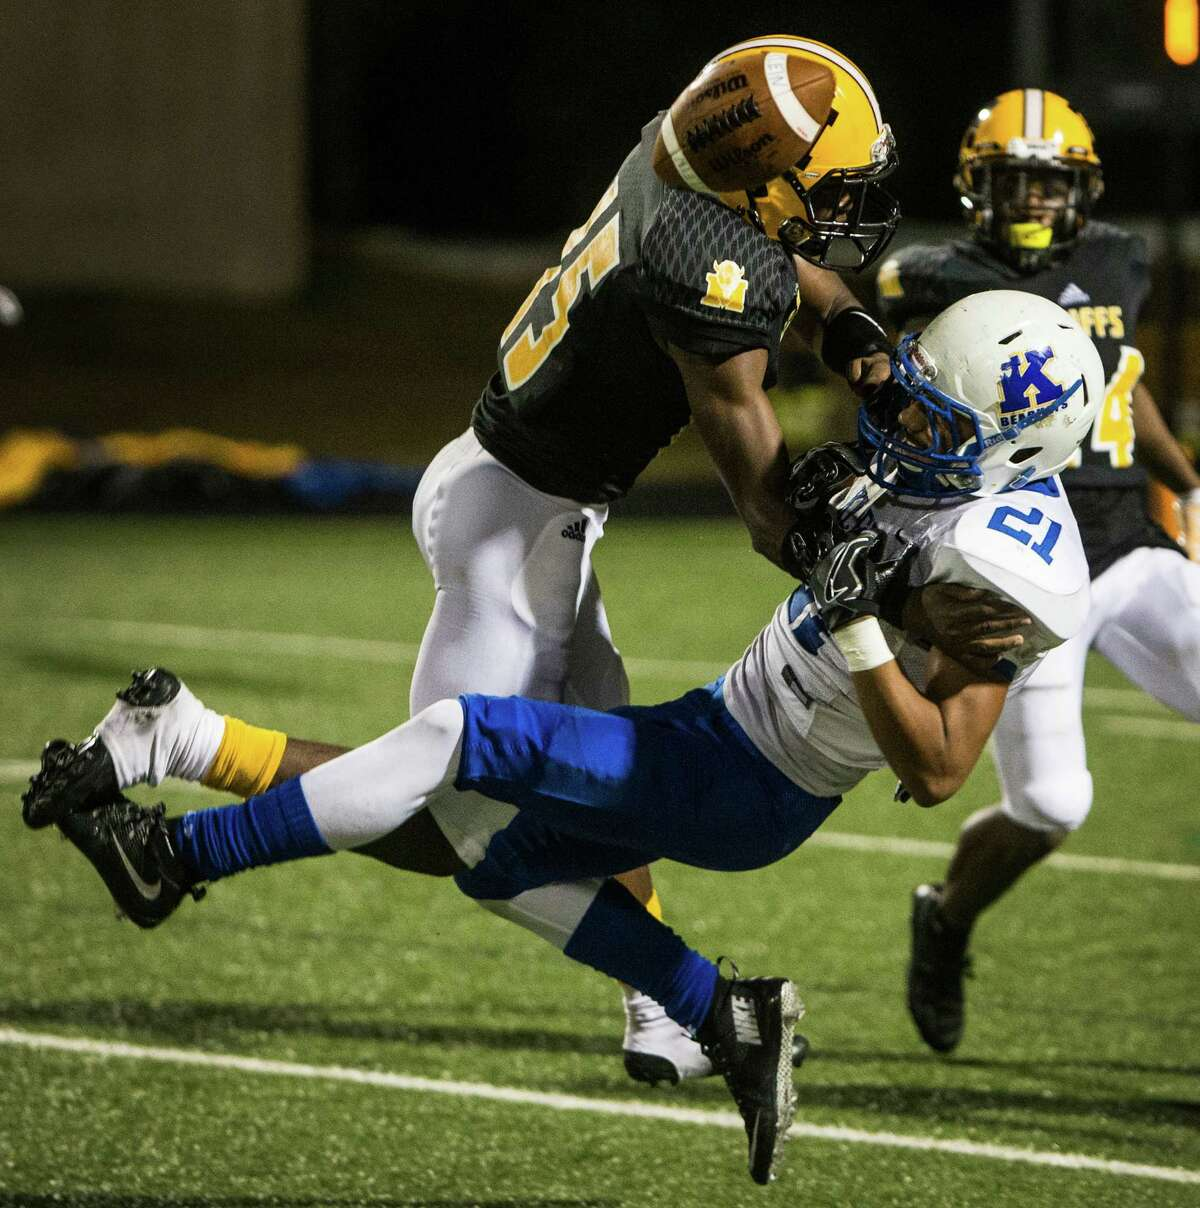 Fort Bend Marshall defensive back Brandon Brantley (15) breaks up a pass intended for Klein running back Malcolm Deary (21) during the fourth quarter of a non-district high school football game at Hall Stadium on Thursday, Sept. 8, 2016, in Missouri City.